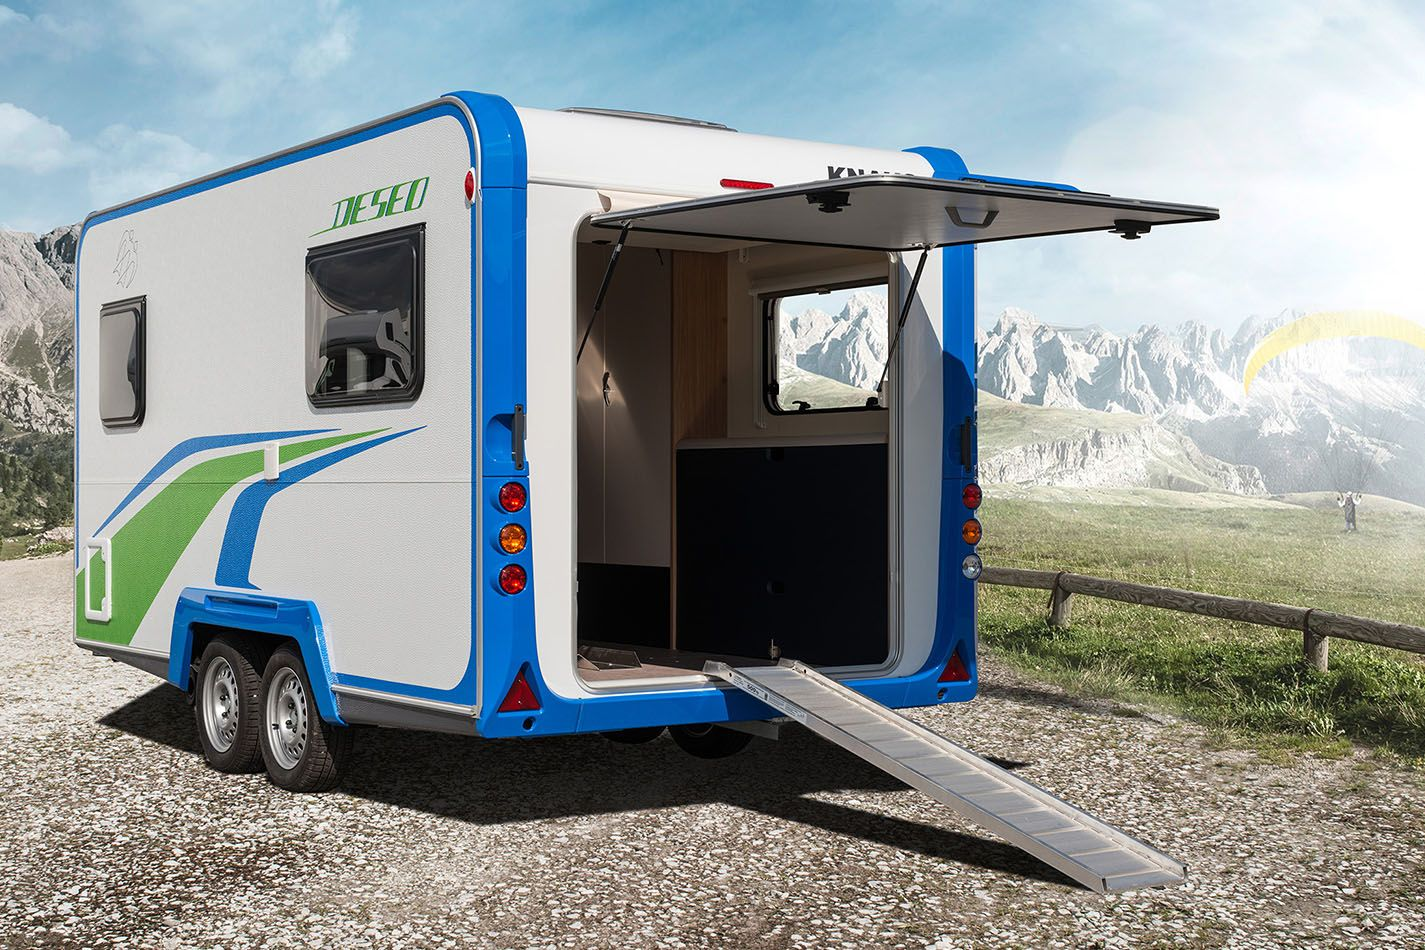 Best Tiny Travel Trailers From Airstream To Teardrop Rvs